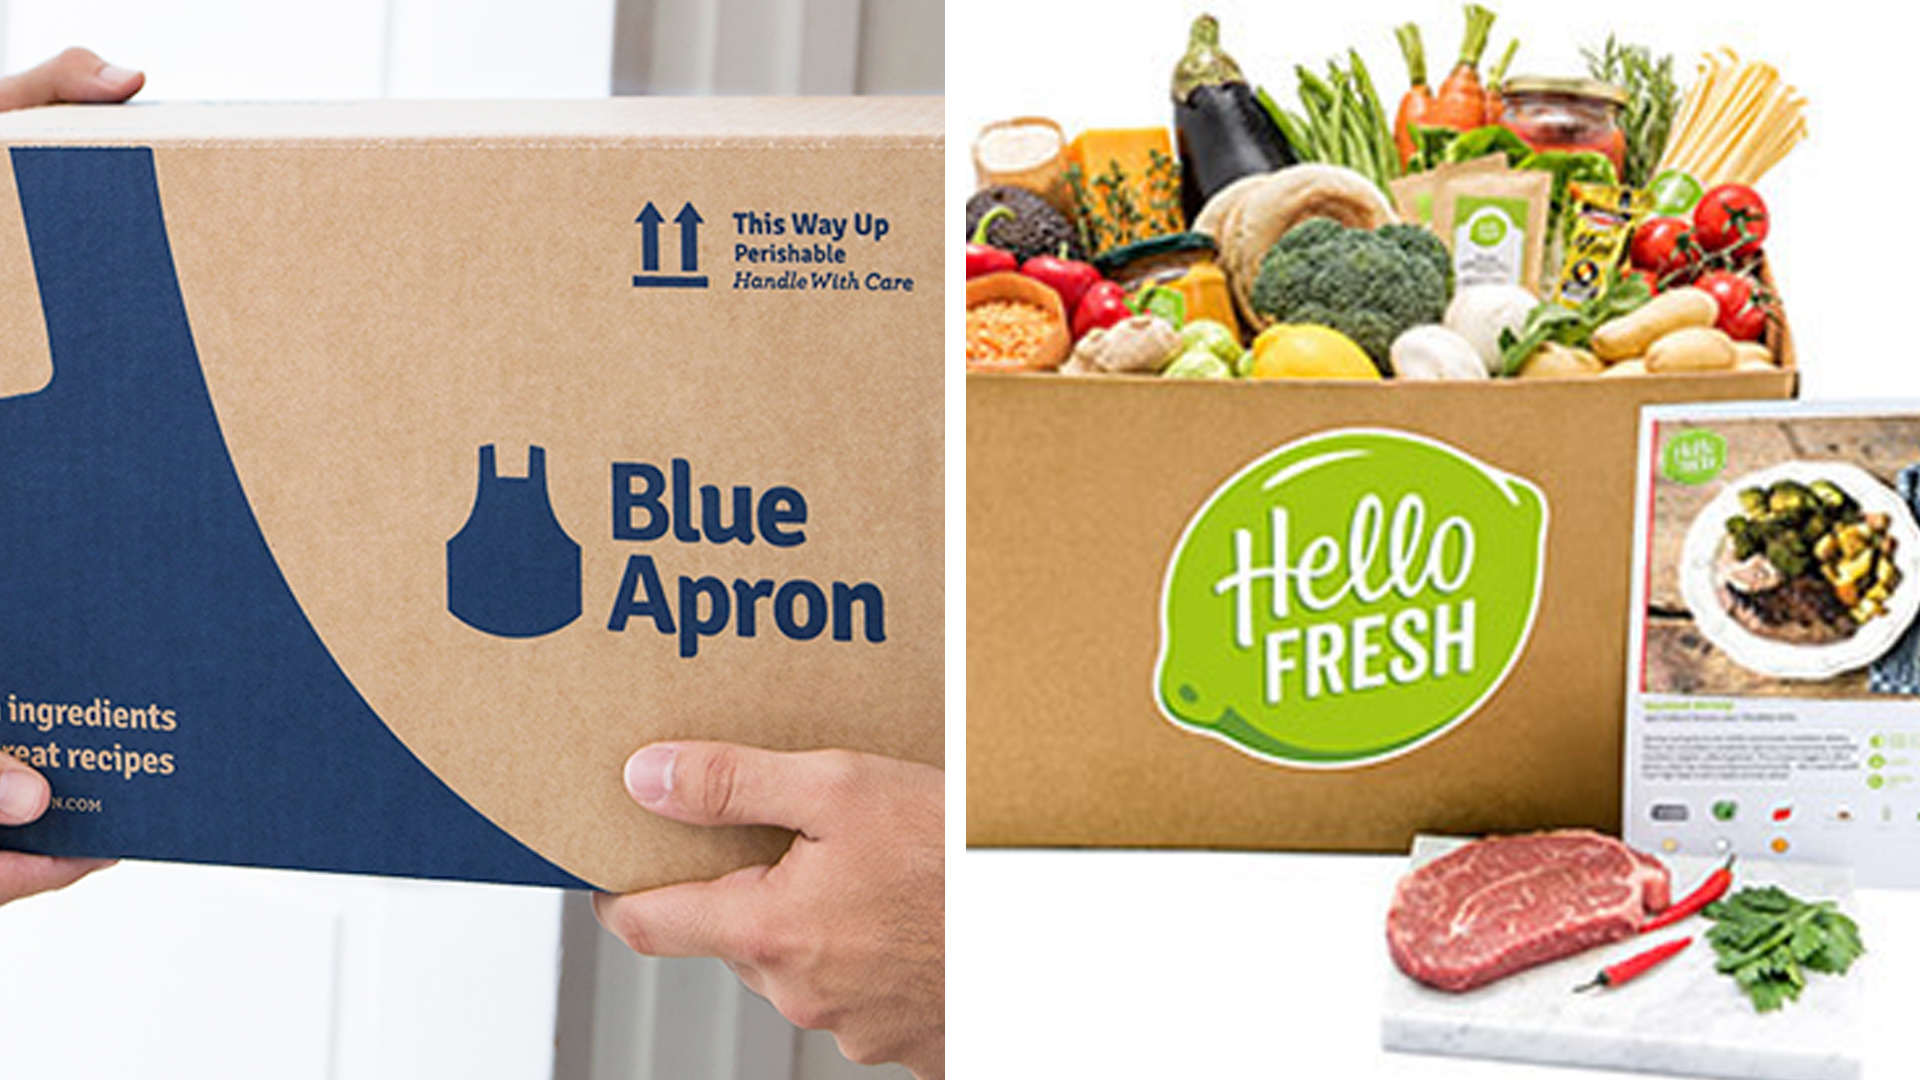 Hellofresh Blue Apron Munchery Which Is Best For You